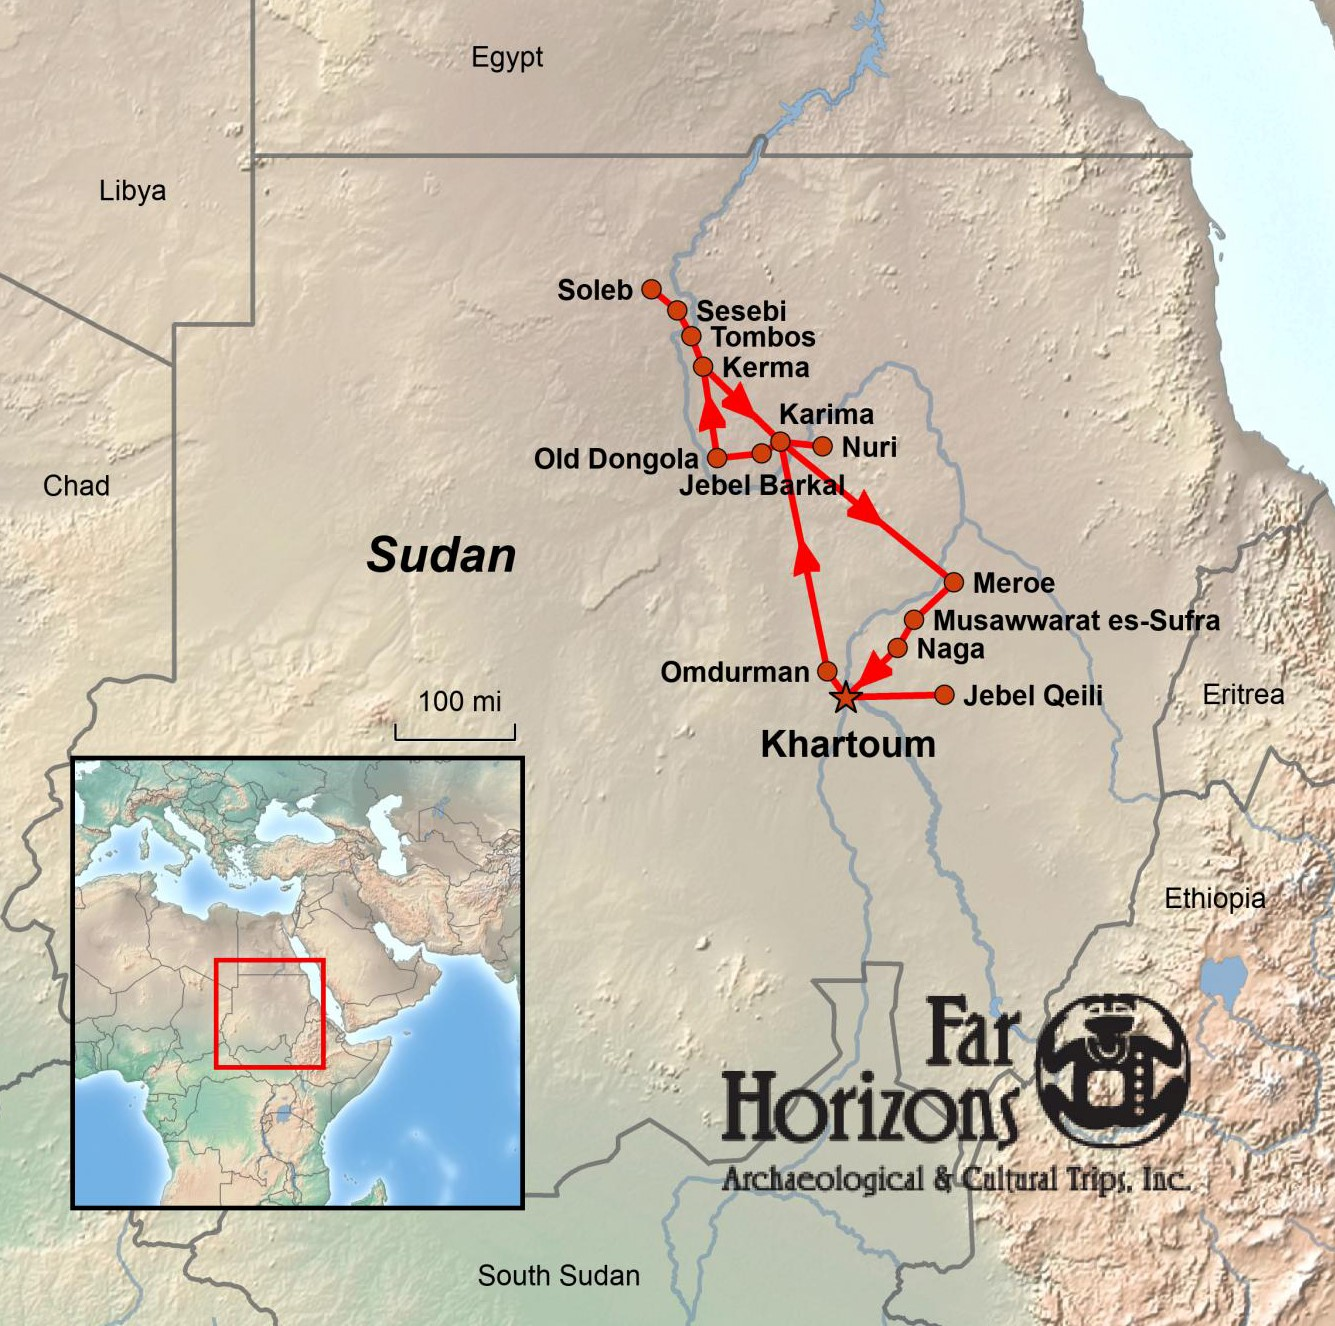 Sudan Tour: Explorations of Ancient Kush | Far Horizons on ur ancient egypt and kush map, kingdom of kush geography, kush africa map, kingdom of ghana on map, land of ancient kush map, kingdom of songhai on map, democratic republic of the congo on map, kingdom of kush trade, kingdom of axum on map, ptolemaic kingdom on map, confederate states of america on map, all egypt and kush map, kingdom of kush history, kingdom of nubia on map, tci ancient egypt and kush map, kingdom kush map egypt, kingdom of zimbabwe on map, kush ancient egypt and israel political map, zulu kingdom on map, kush empire map,